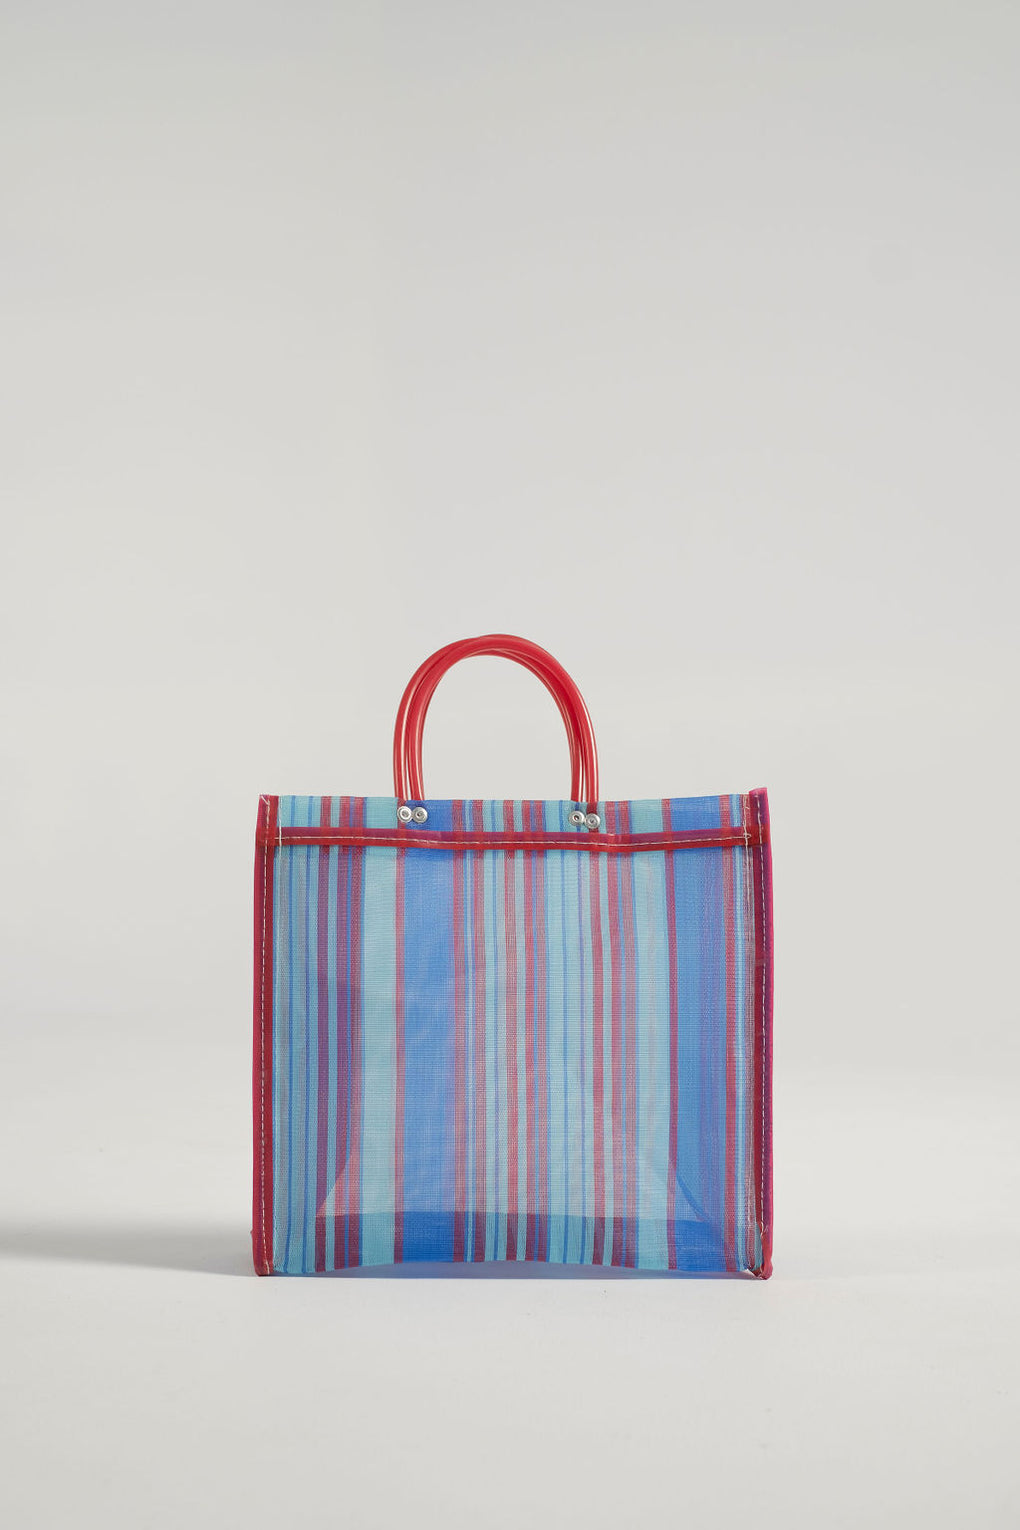 Bolsa - Idun - recycled bag - reusable bag - St. Paul